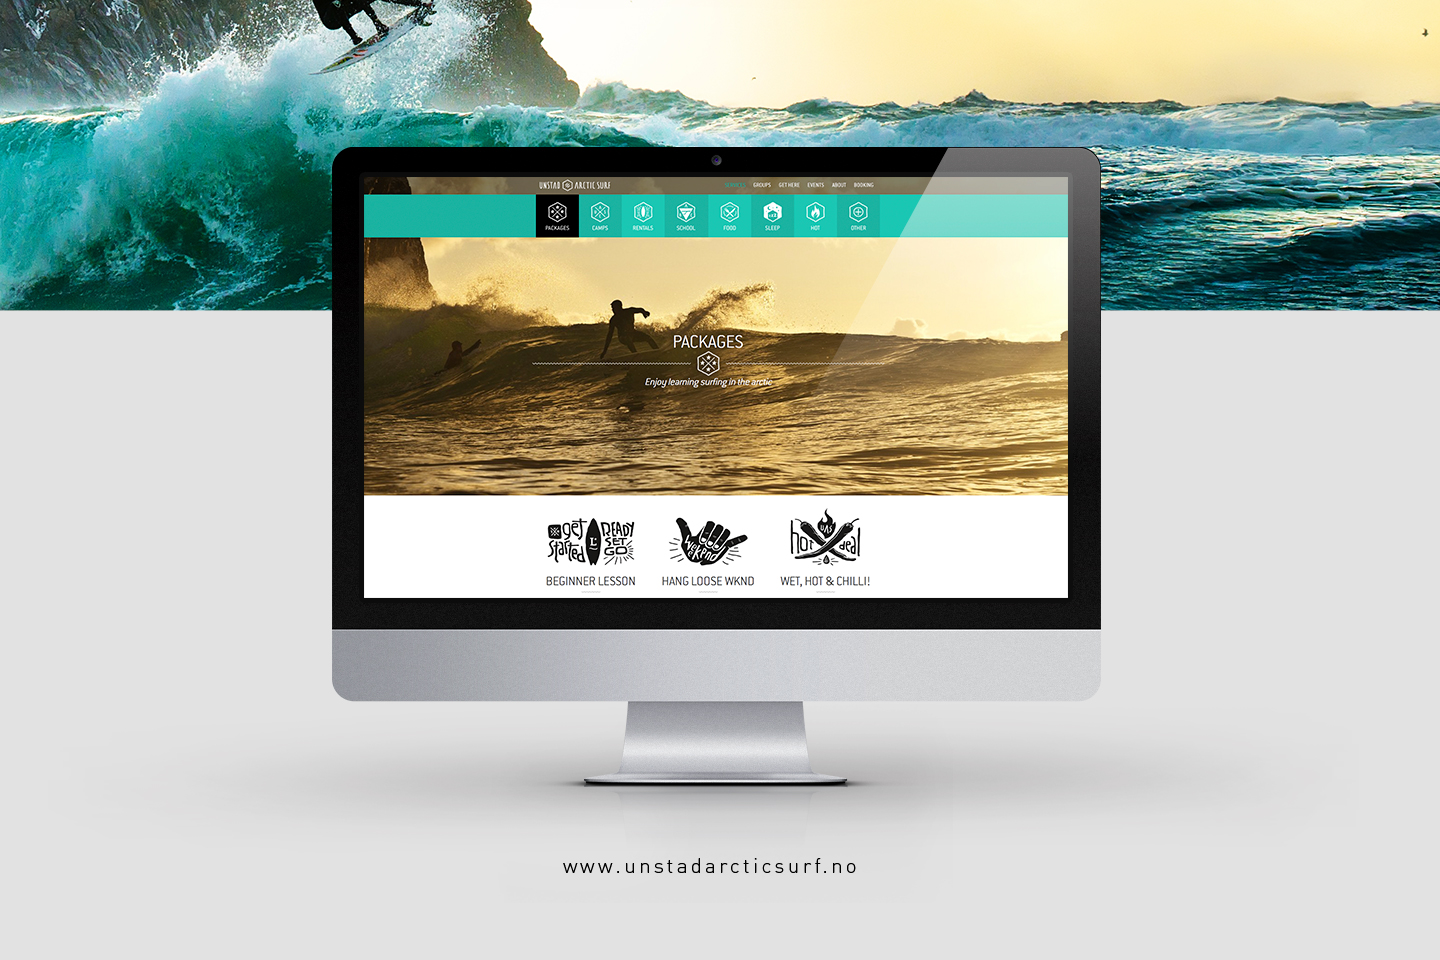 Unstad Arctic Surf website on imac